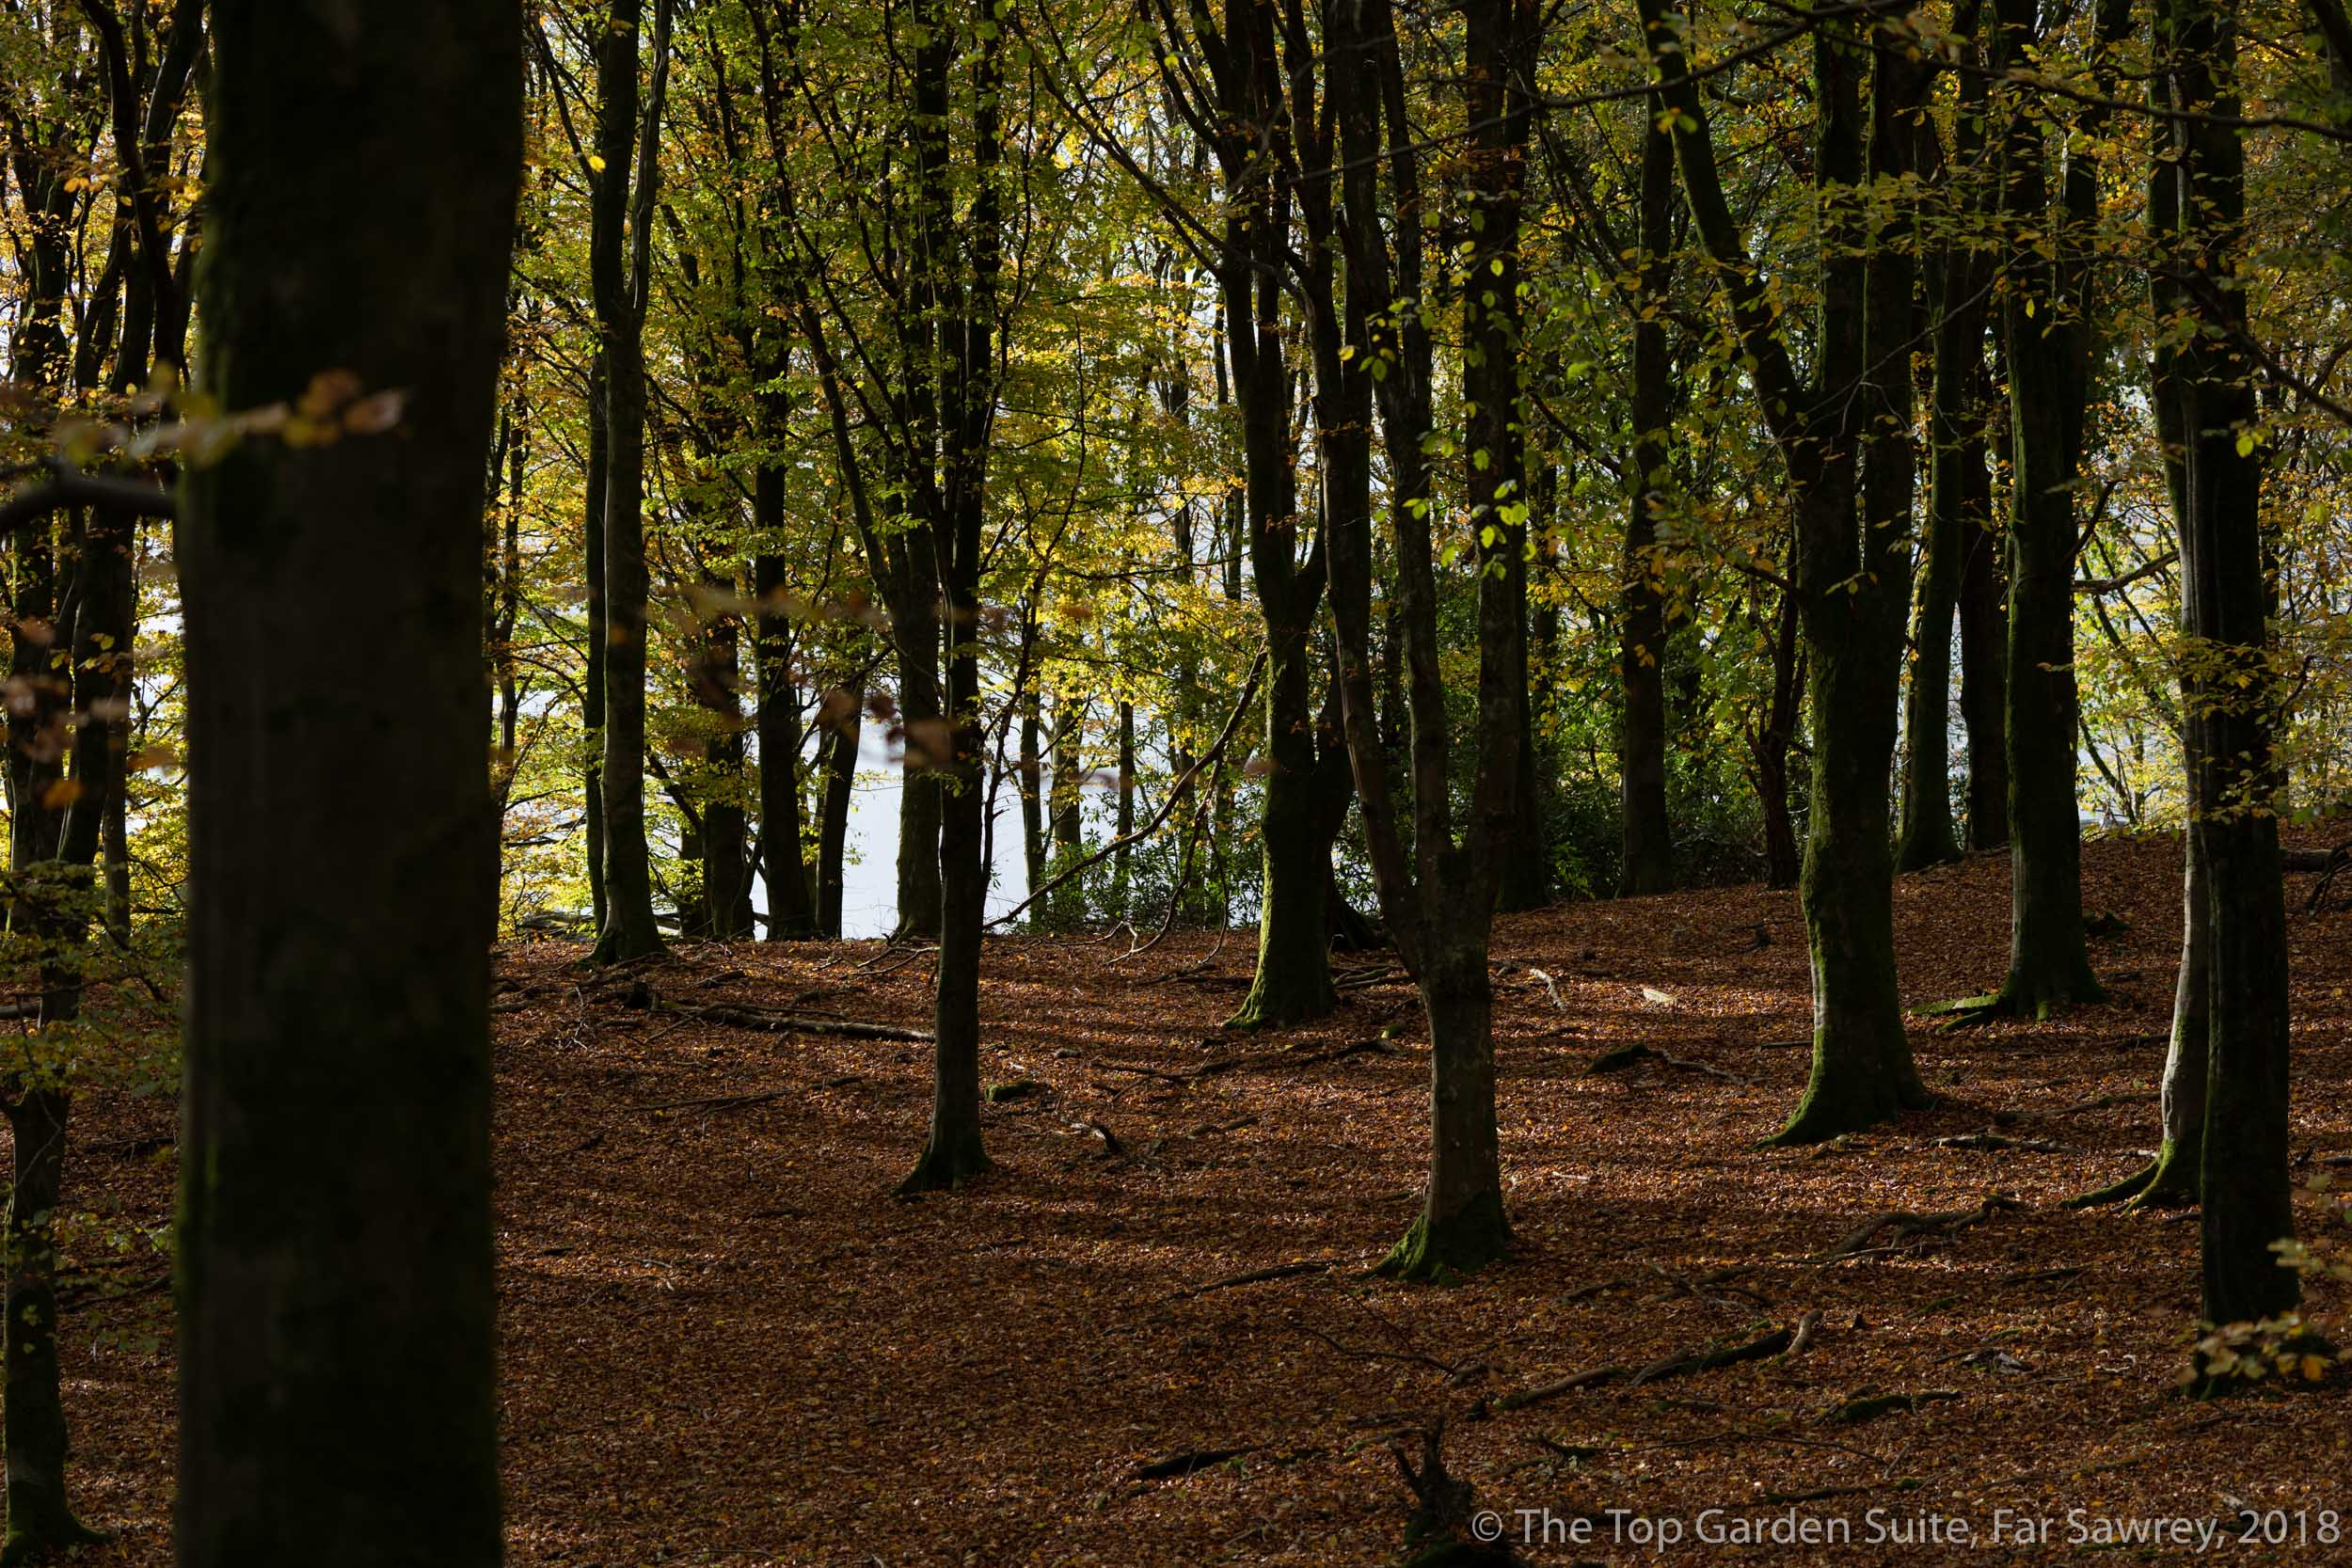 Woodland and fallen leaves at Bryers Fold